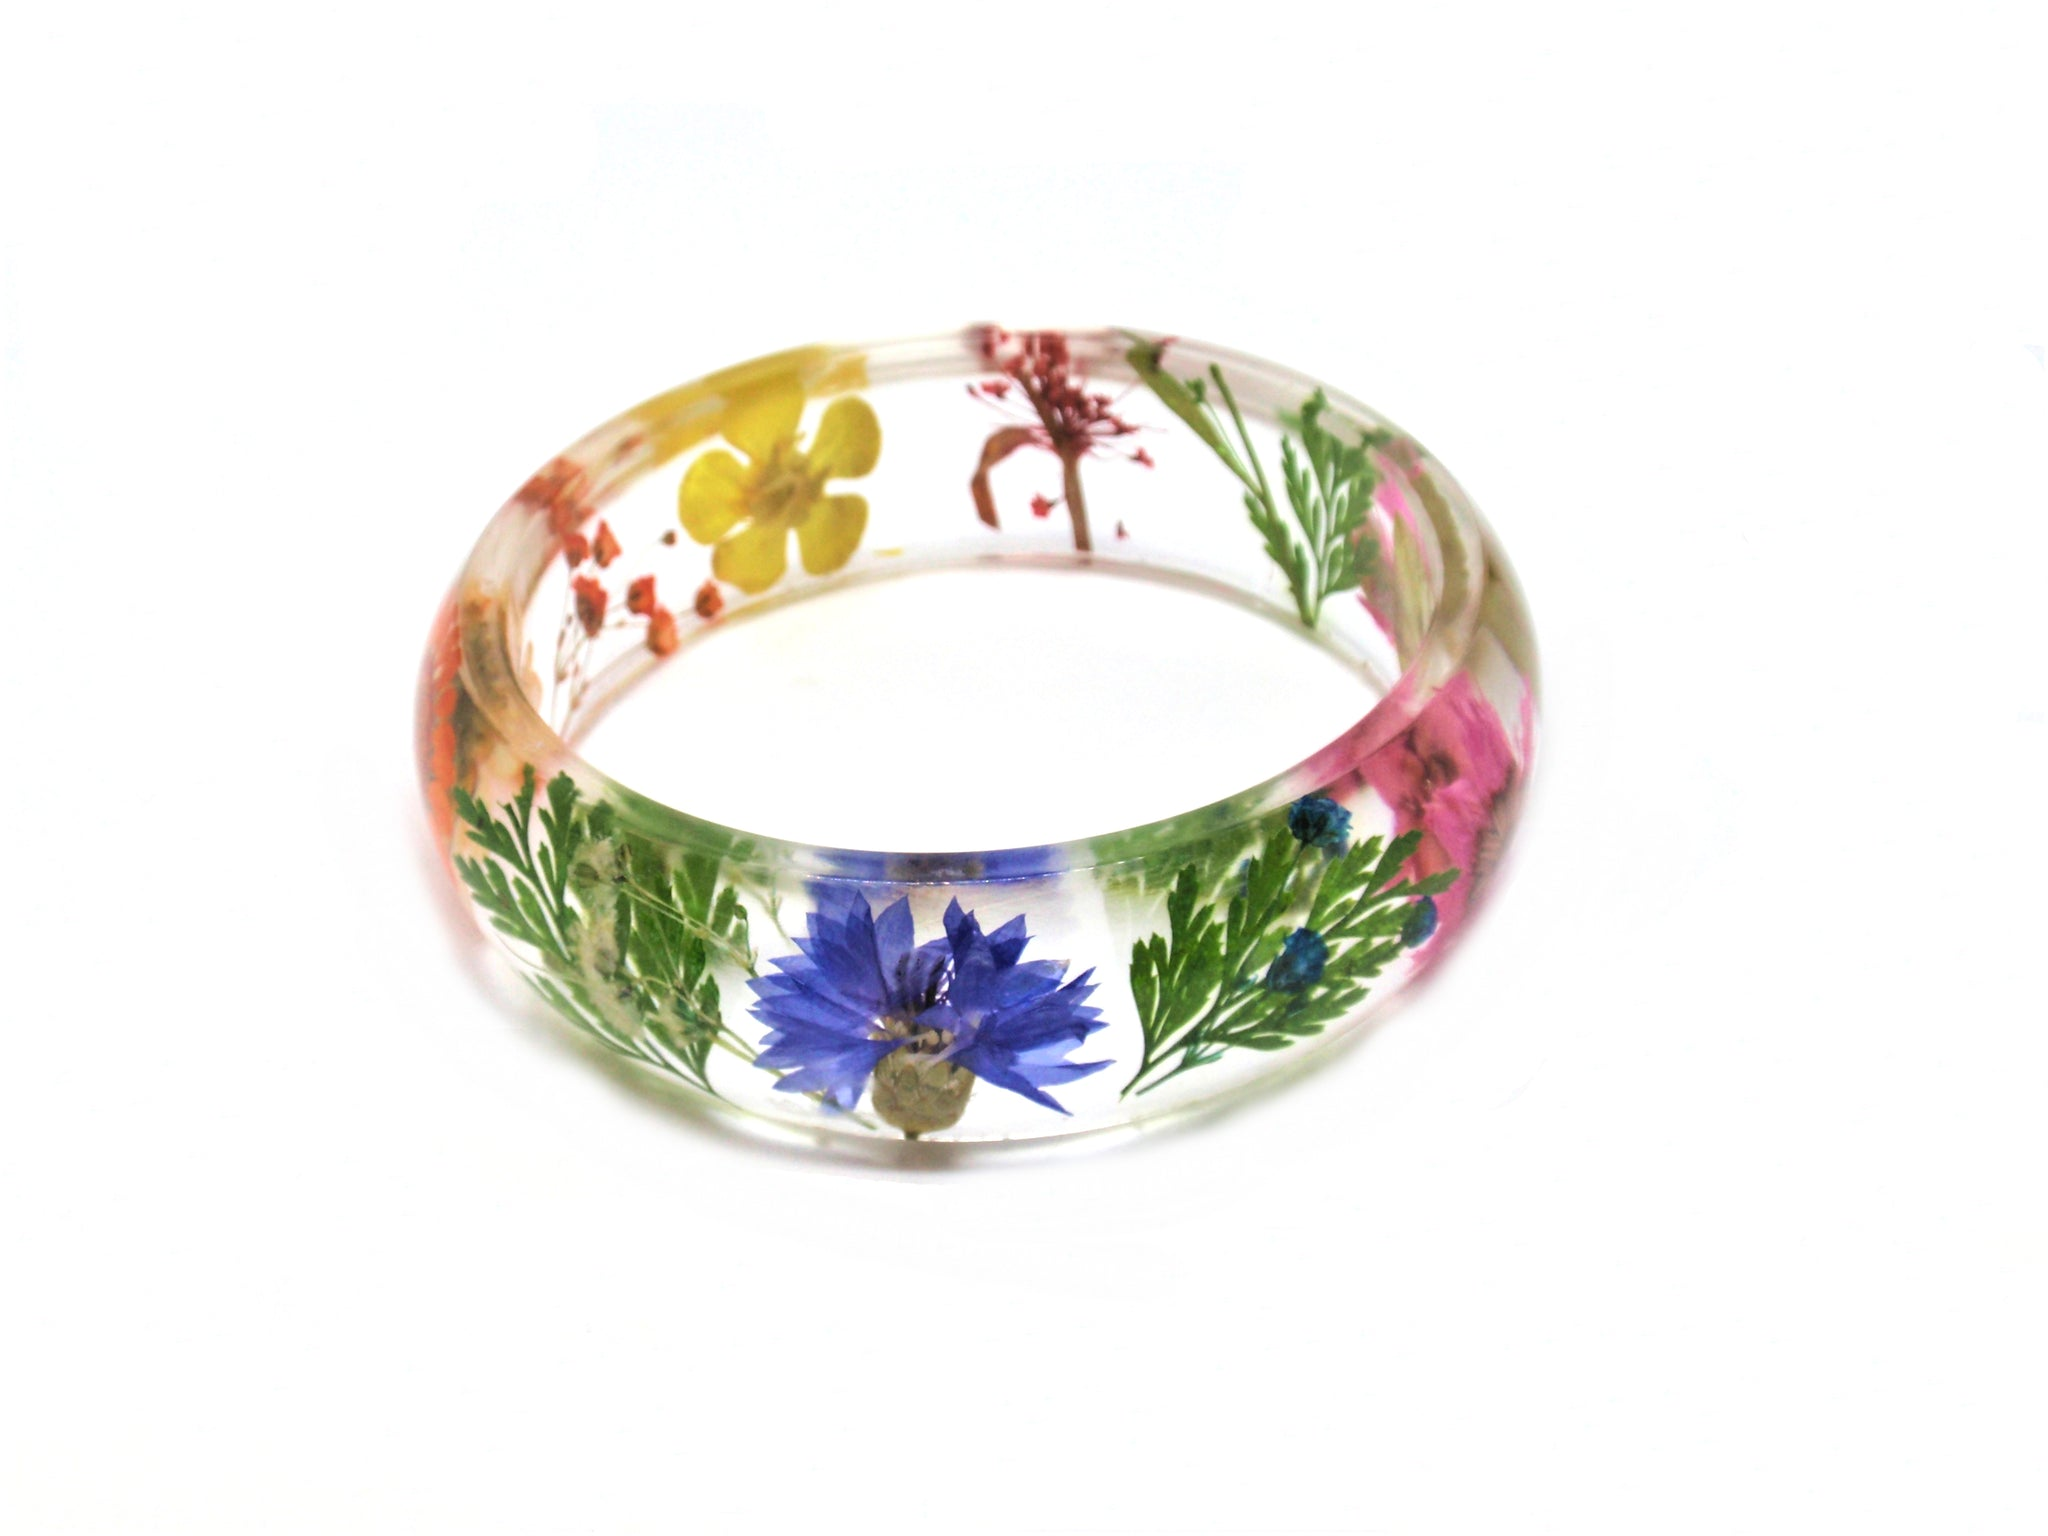 Real Flower Resin Bracelet, Pressed flower jewelry, Resin Bangle Bracelet